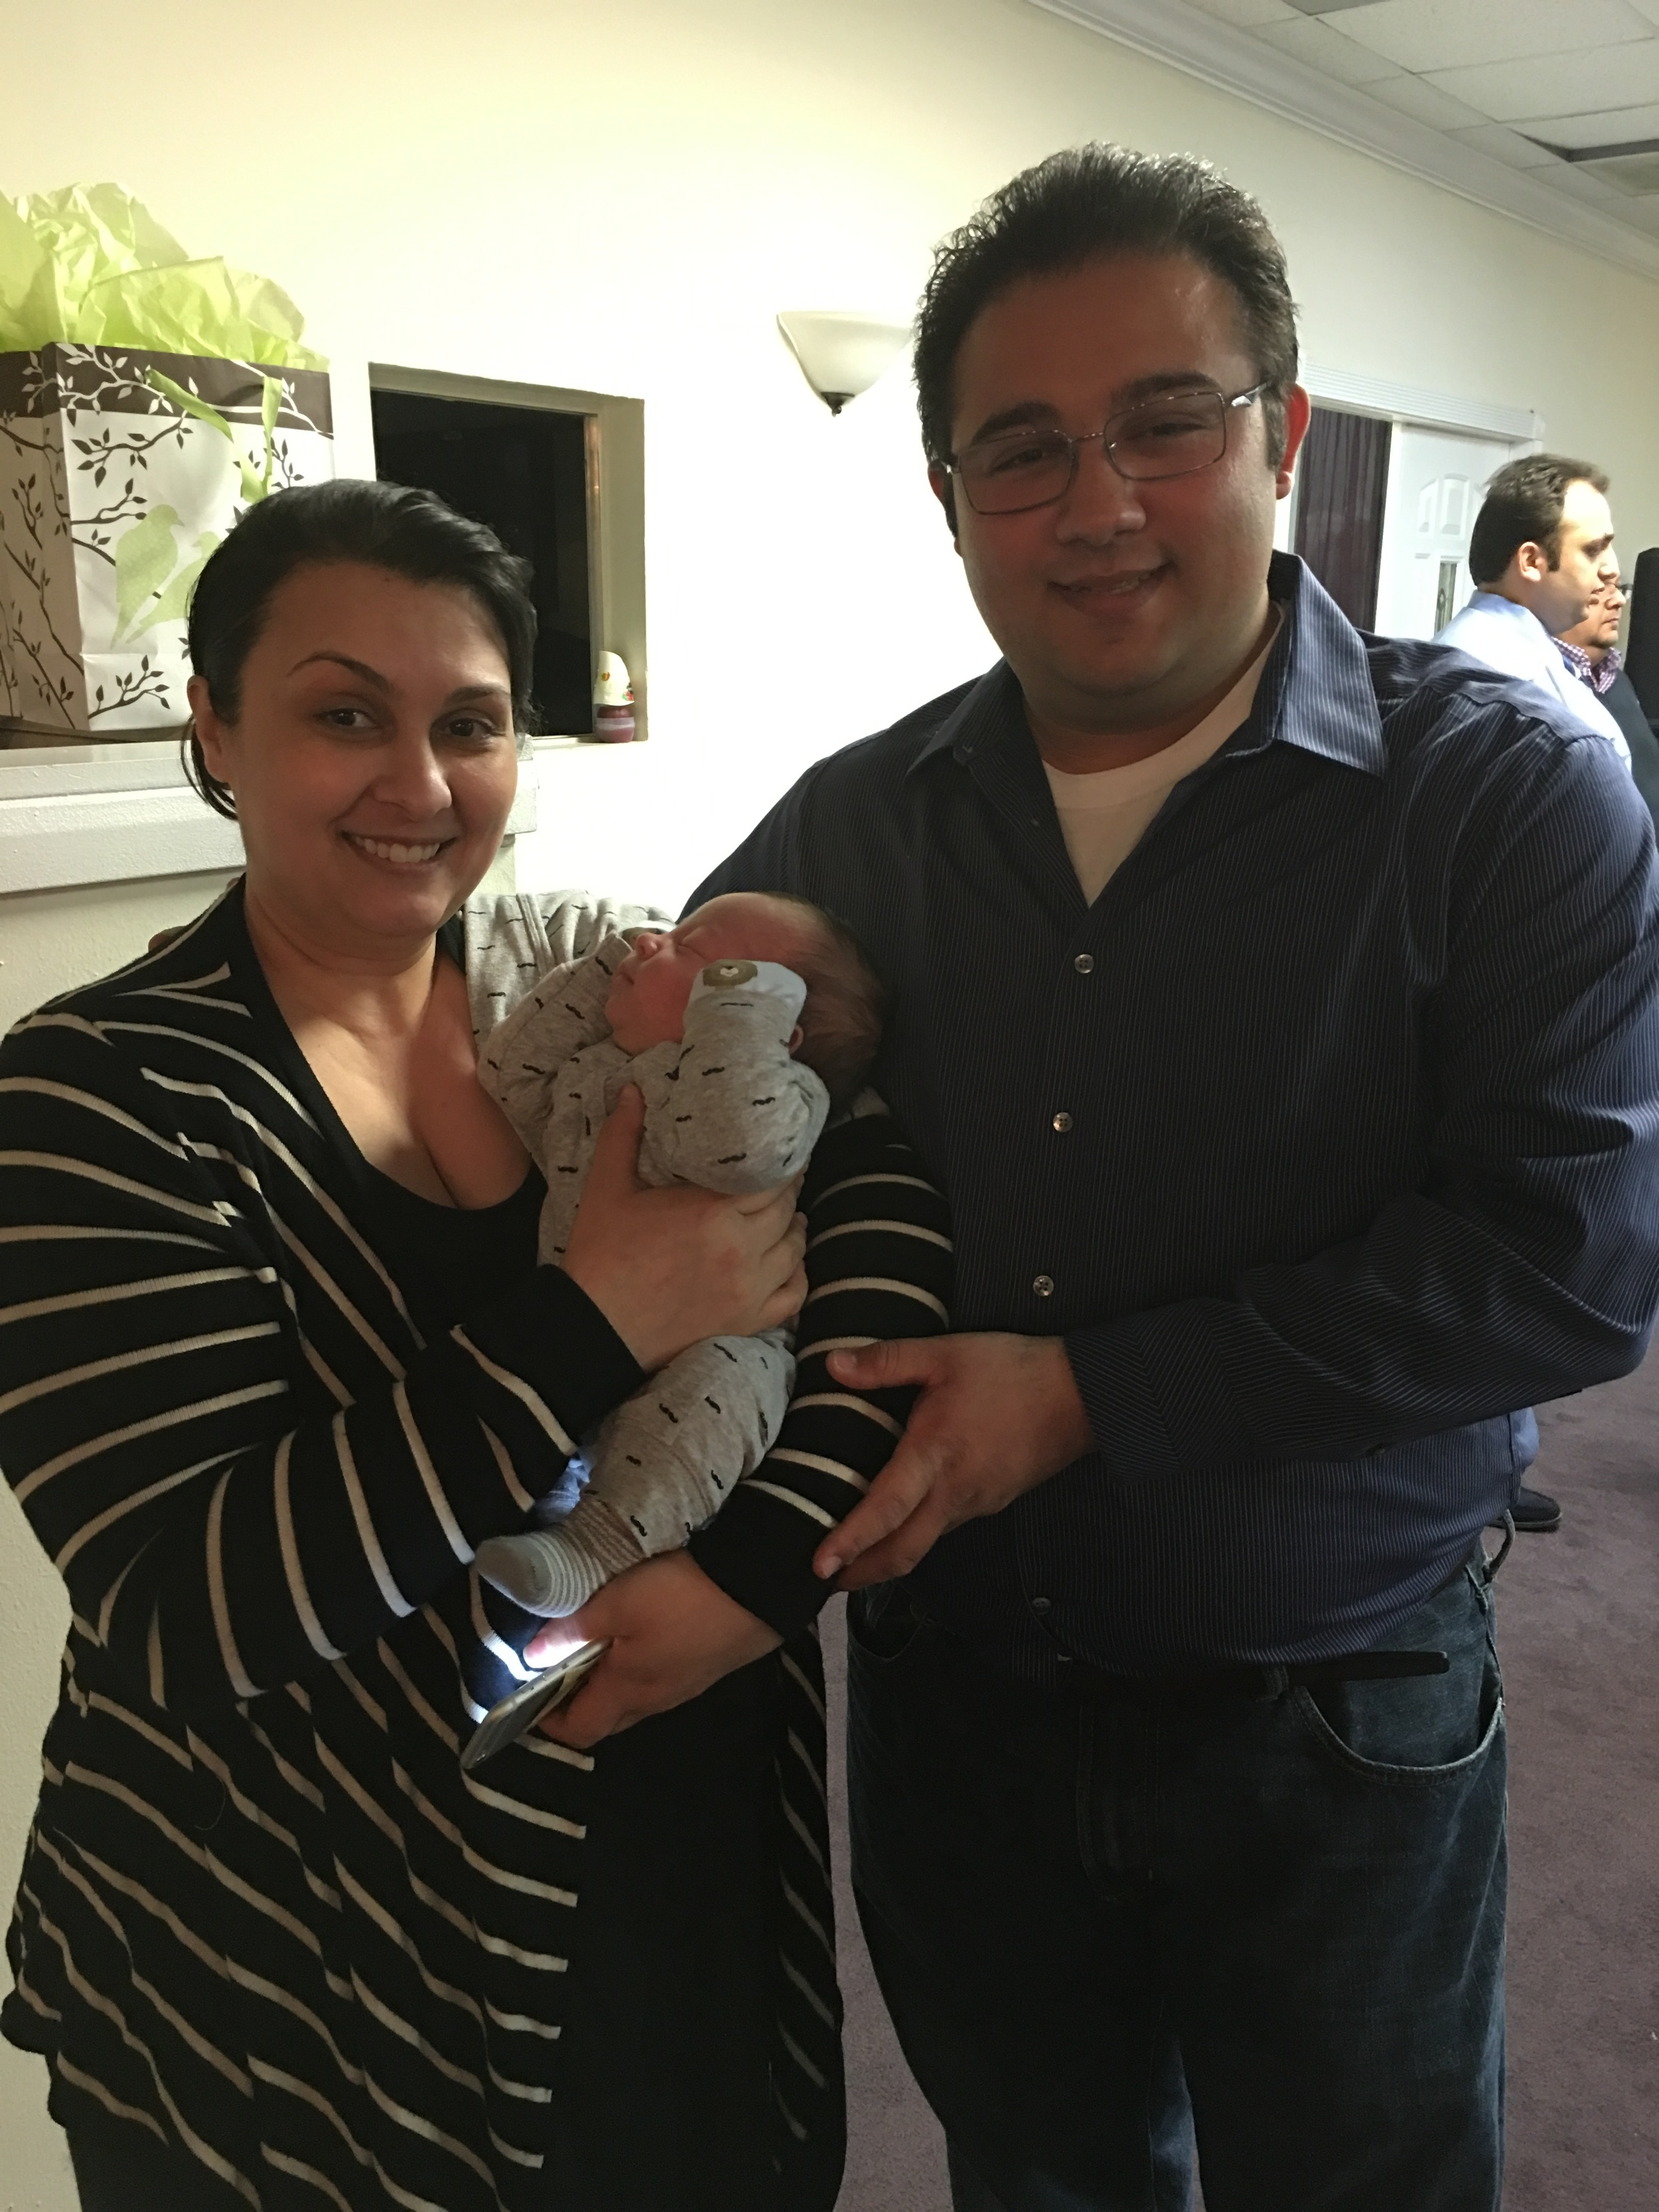 HEALED OF CANCER AND GIVEN A BABY